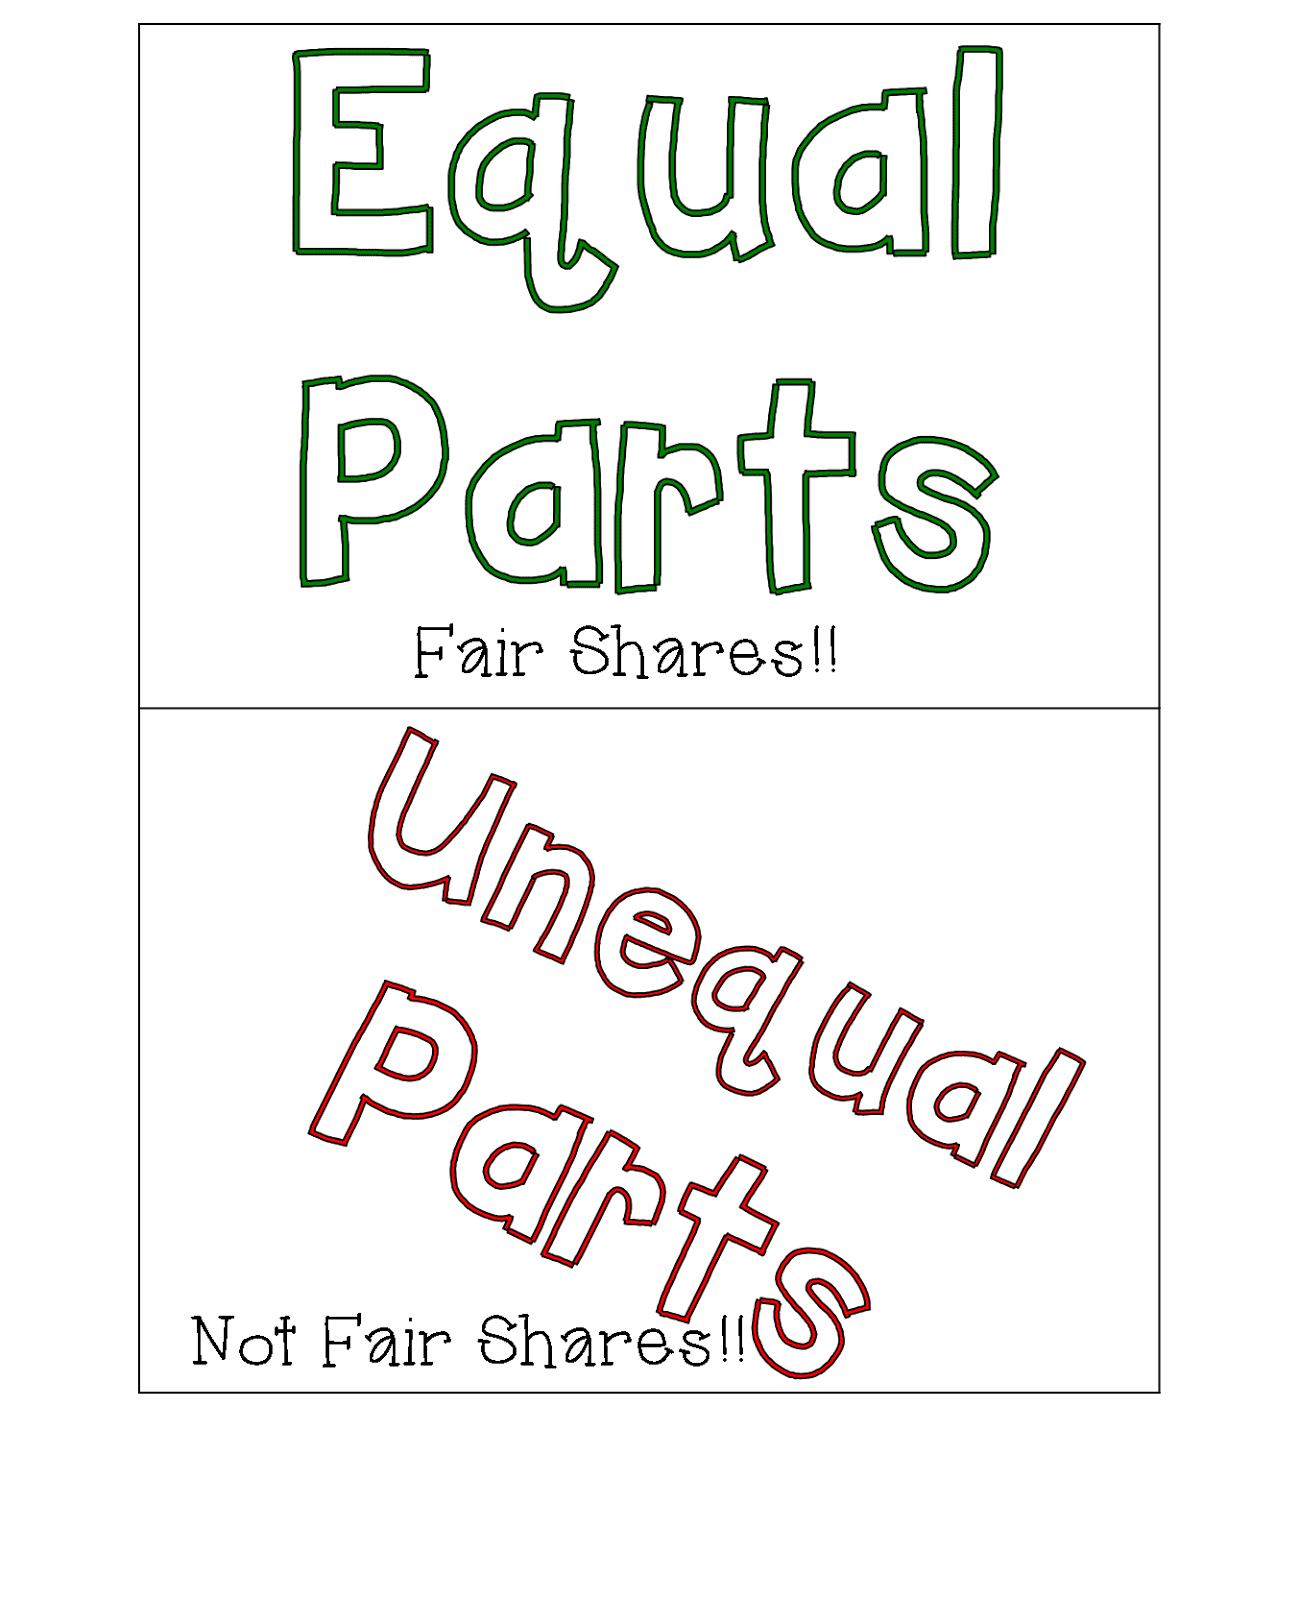 Equal Or Unequal Worksheet Grade 1   Printable Worksheets and Activities  for Teachers [ 1600 x 1299 Pixel ]